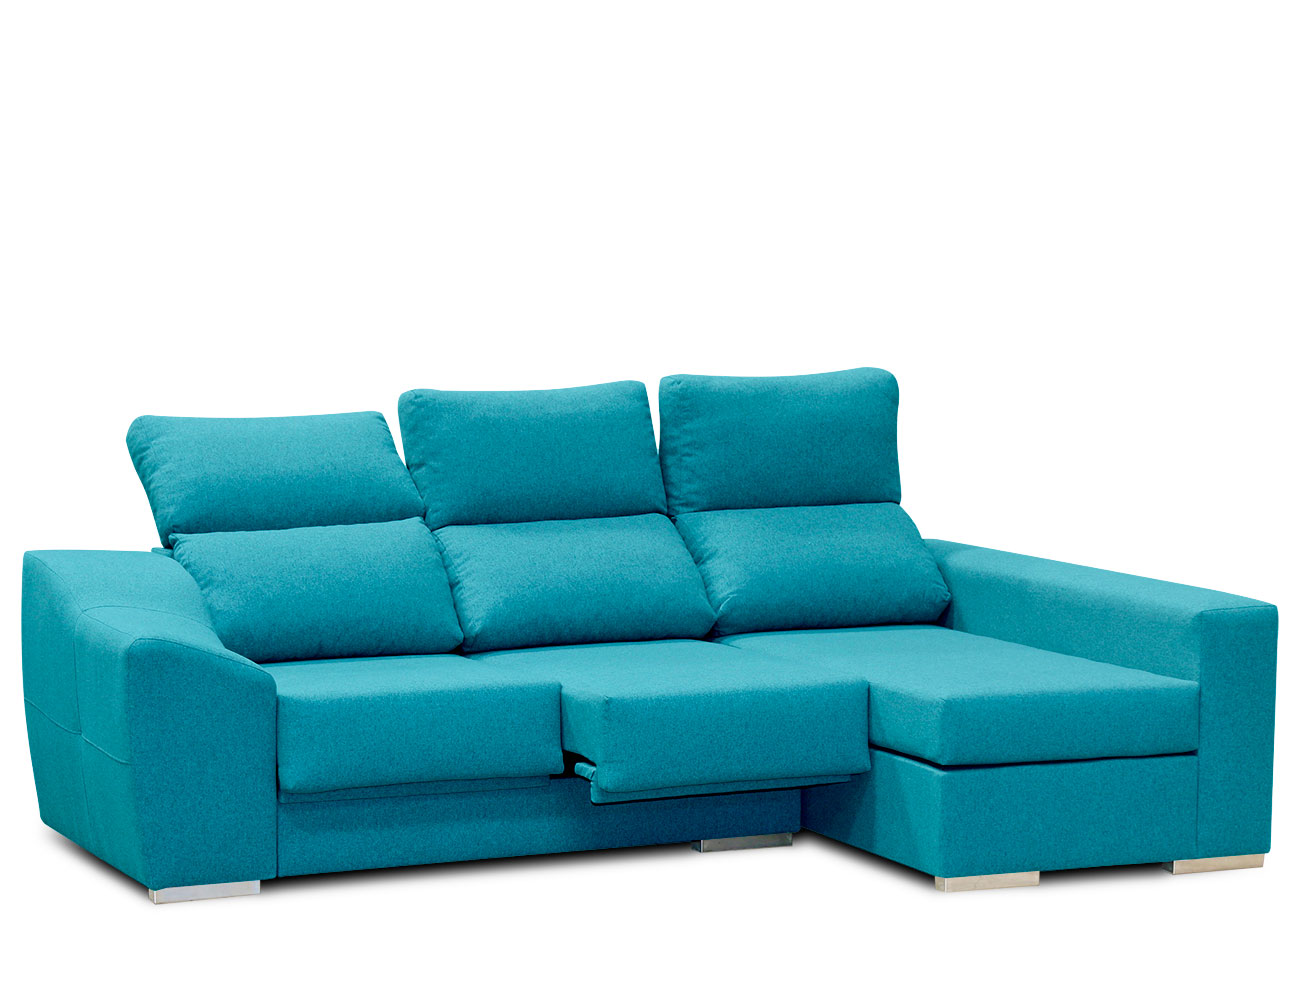 Sofa chaiselongue moderno turquesa 2